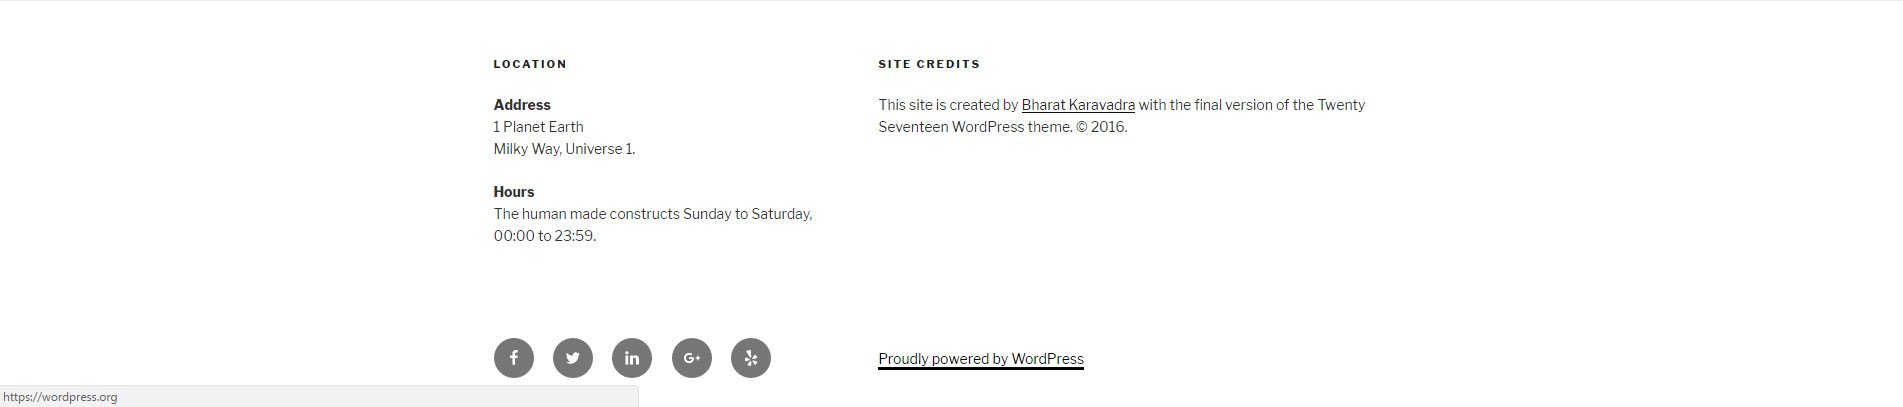 How To Change The 'Proudly Powered By WordPress' Text In The